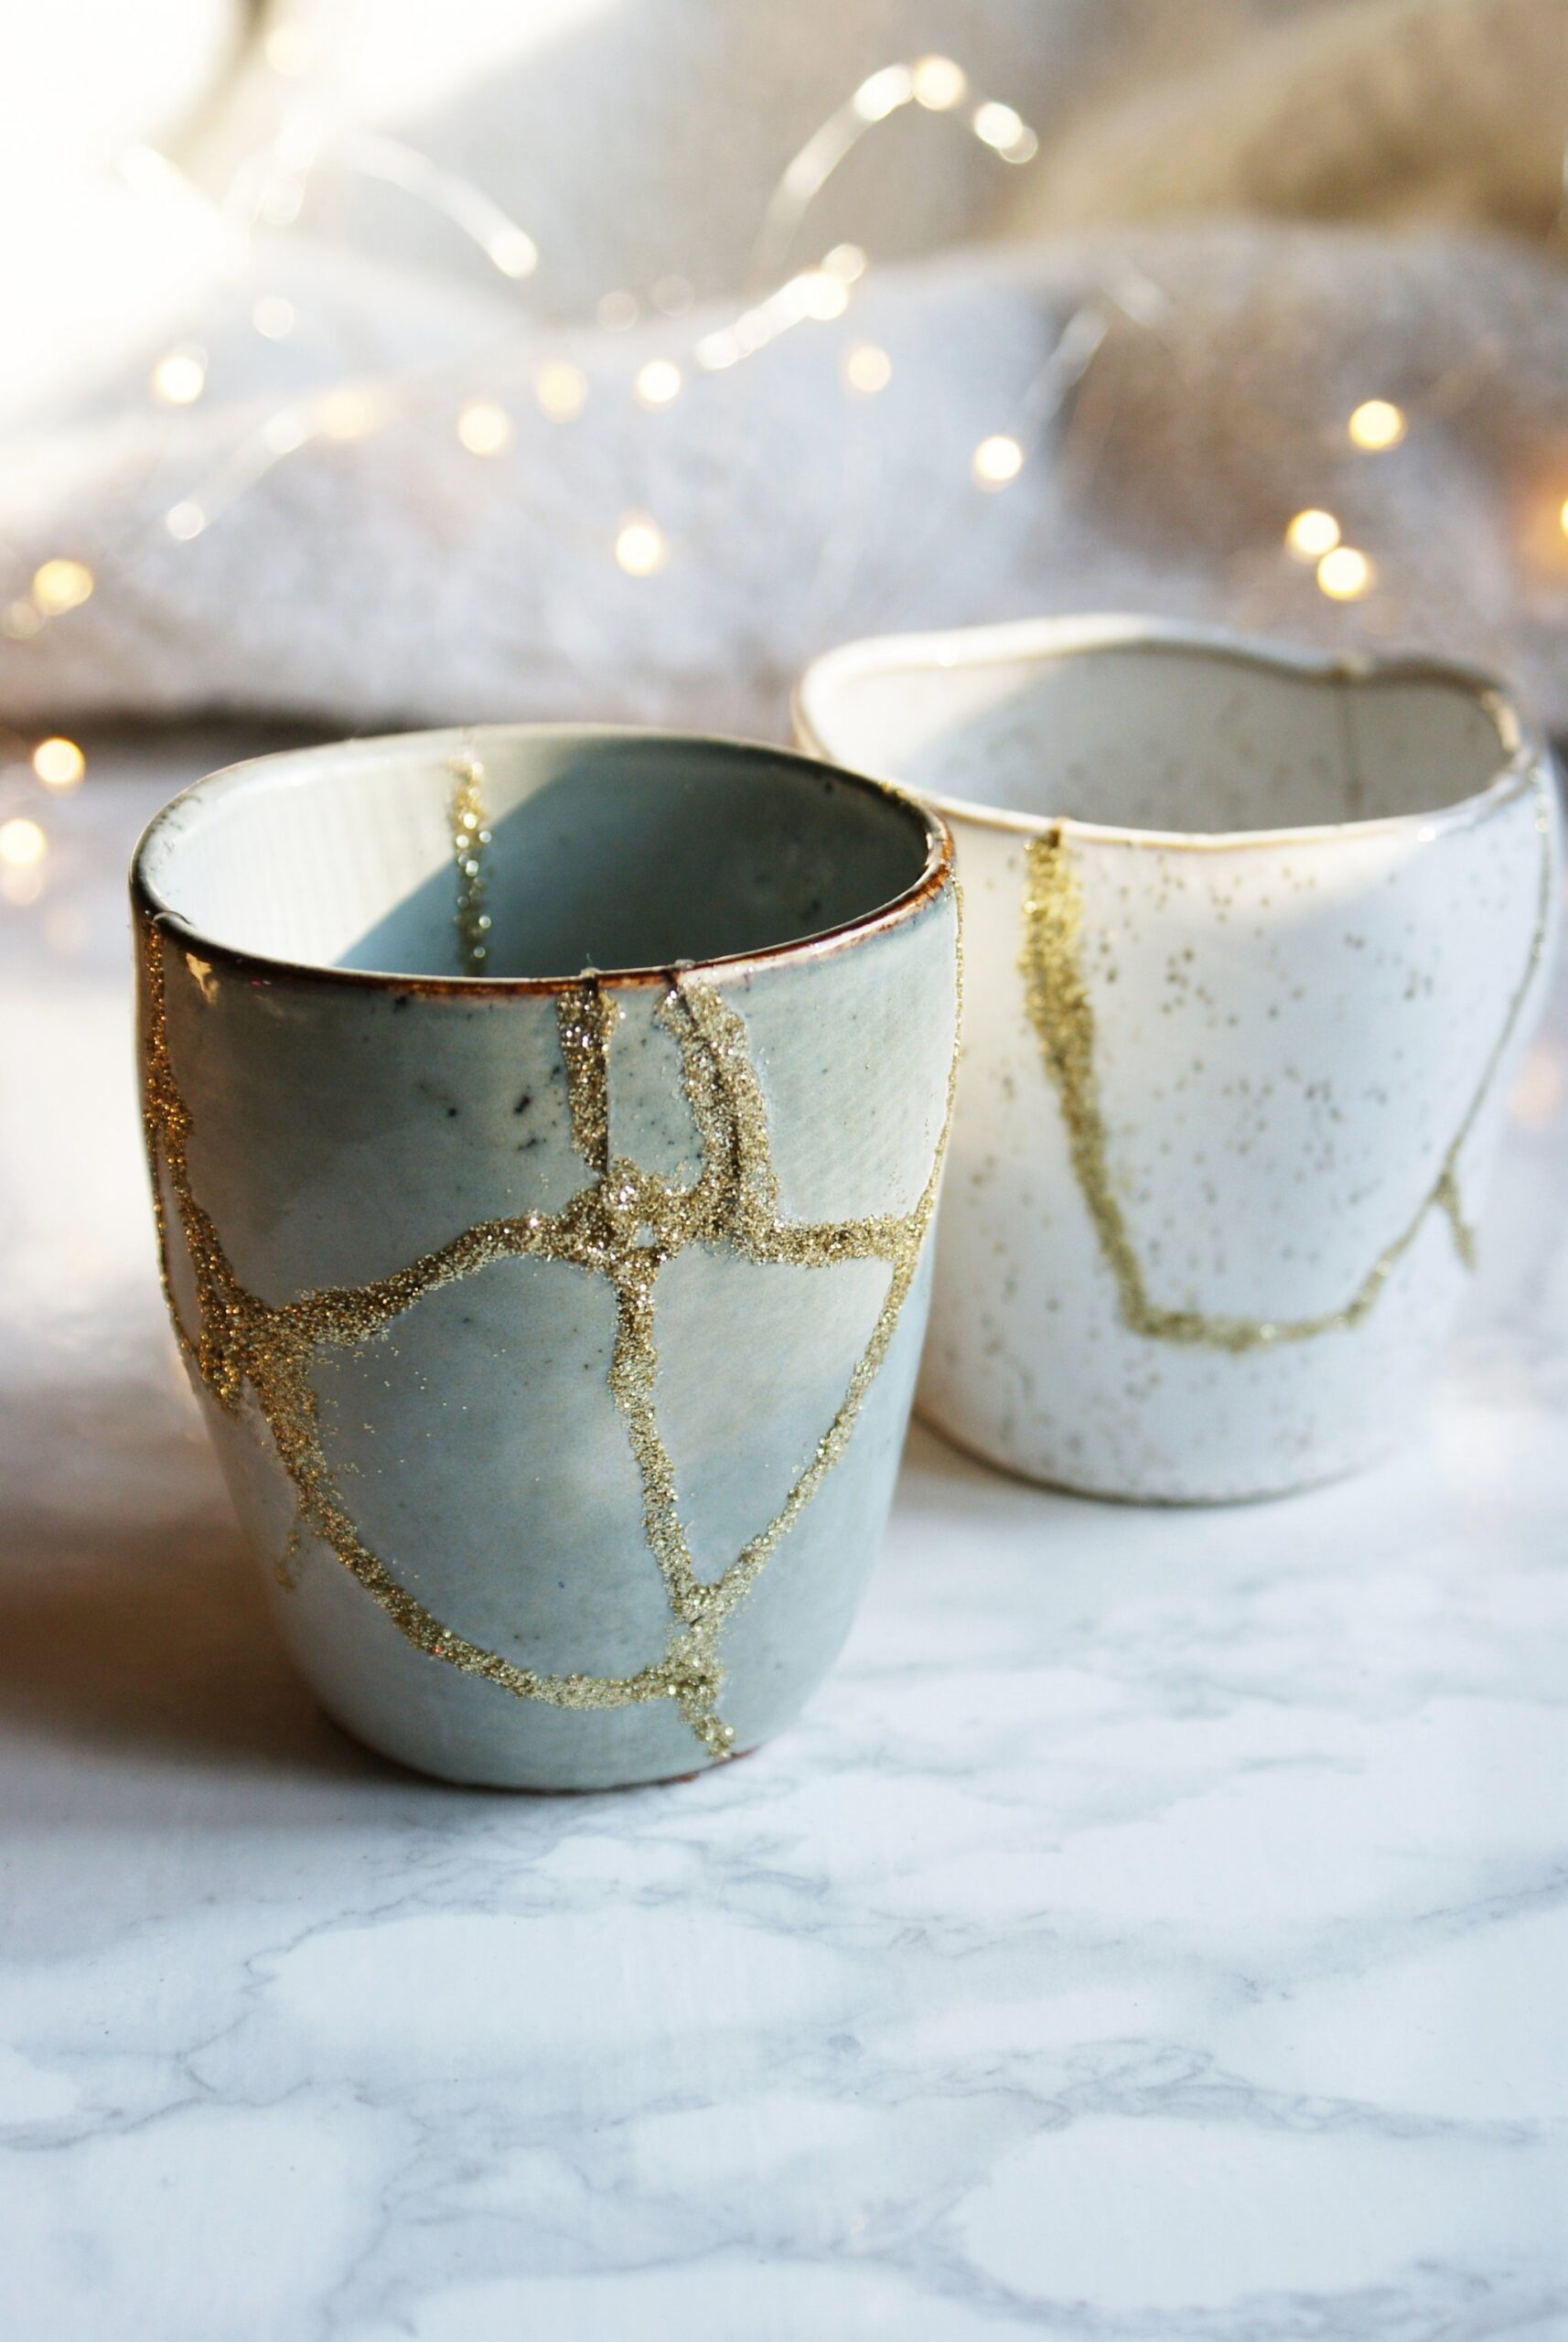 DIY KINTSUGI (THE JAPANESE ART OF REPAIRING BROKEN POTTERY)